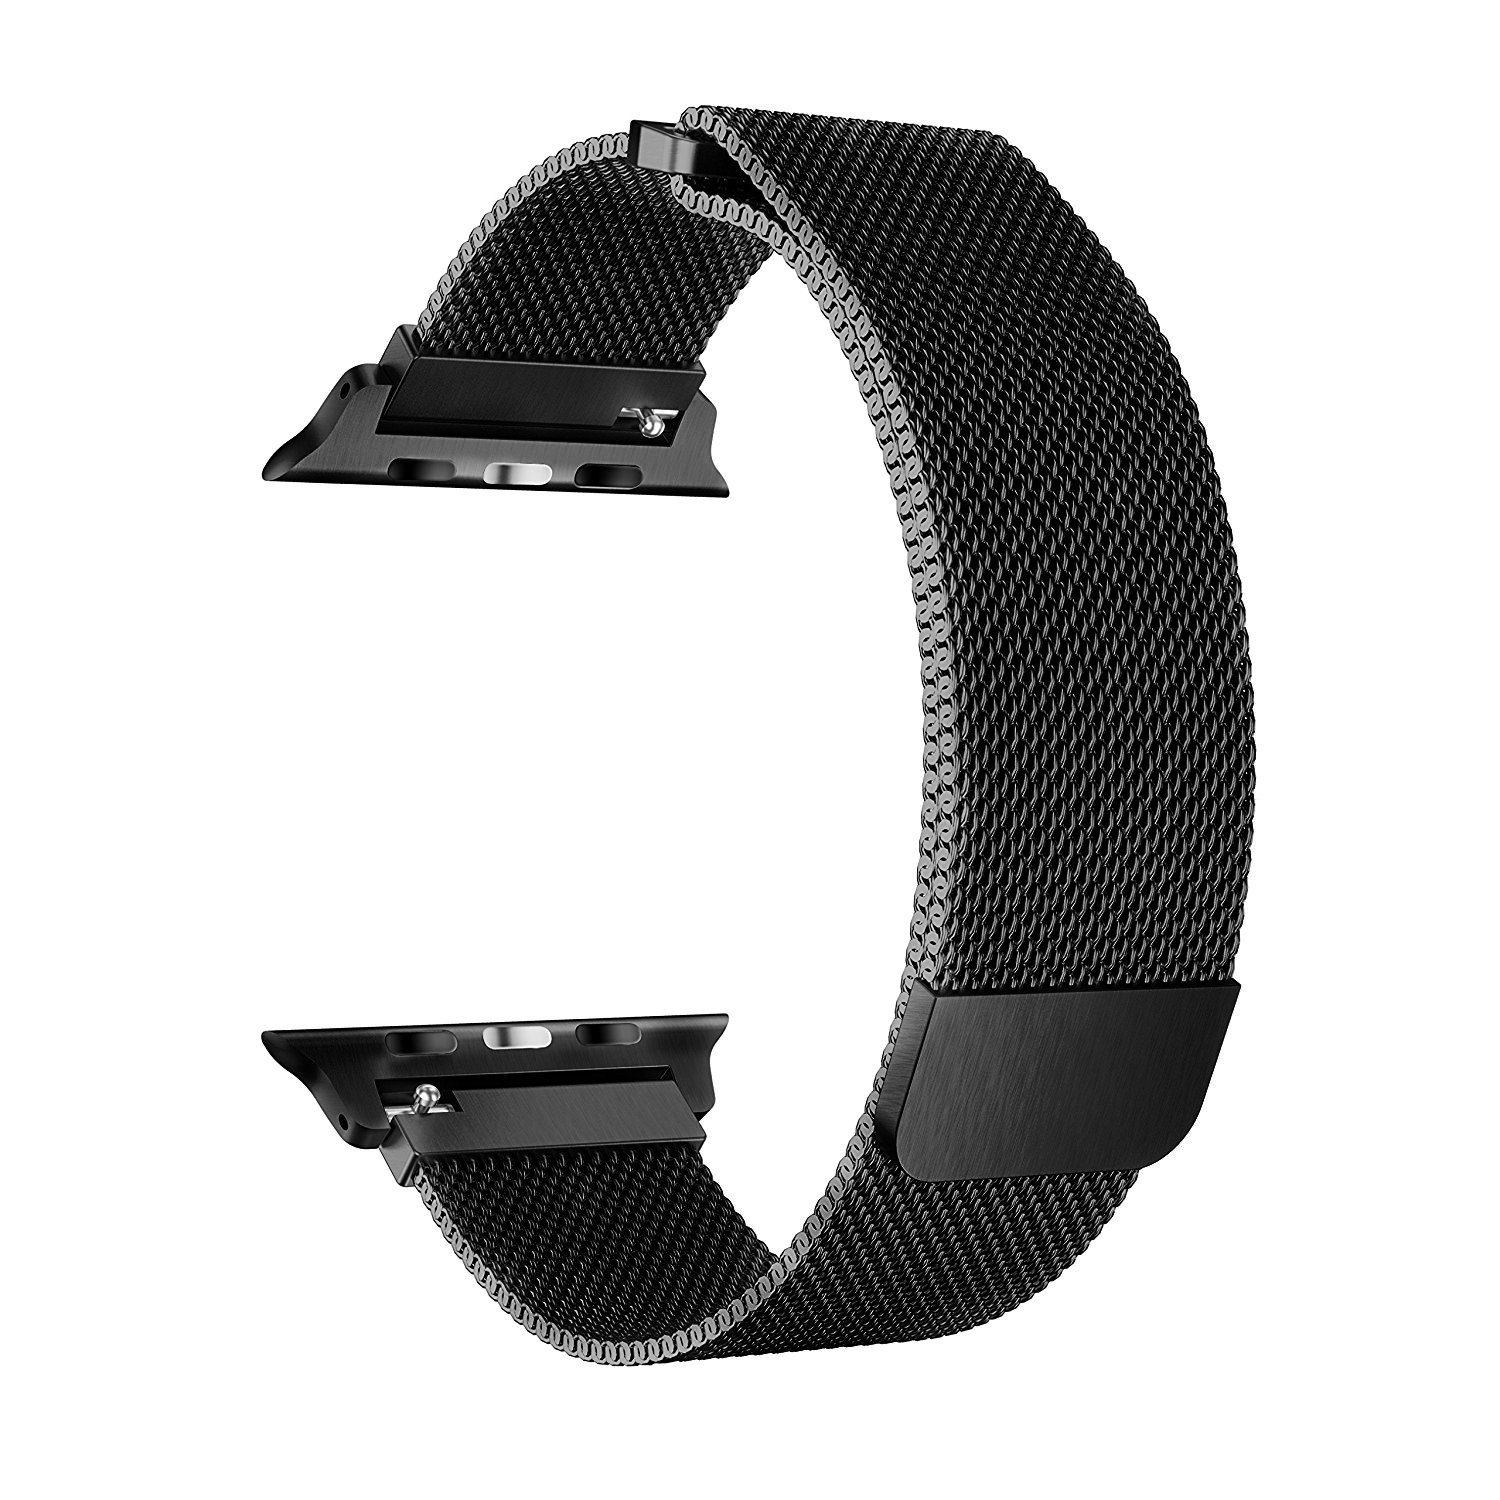 BRG for Apple Watch Band 38mm 42mm, Stainless Steel Mesh Milanese Loop with Adjustable Magnetic Closure Replacement iWatch Band for Apple Watch Series 3 2 1 (black, 38mm)